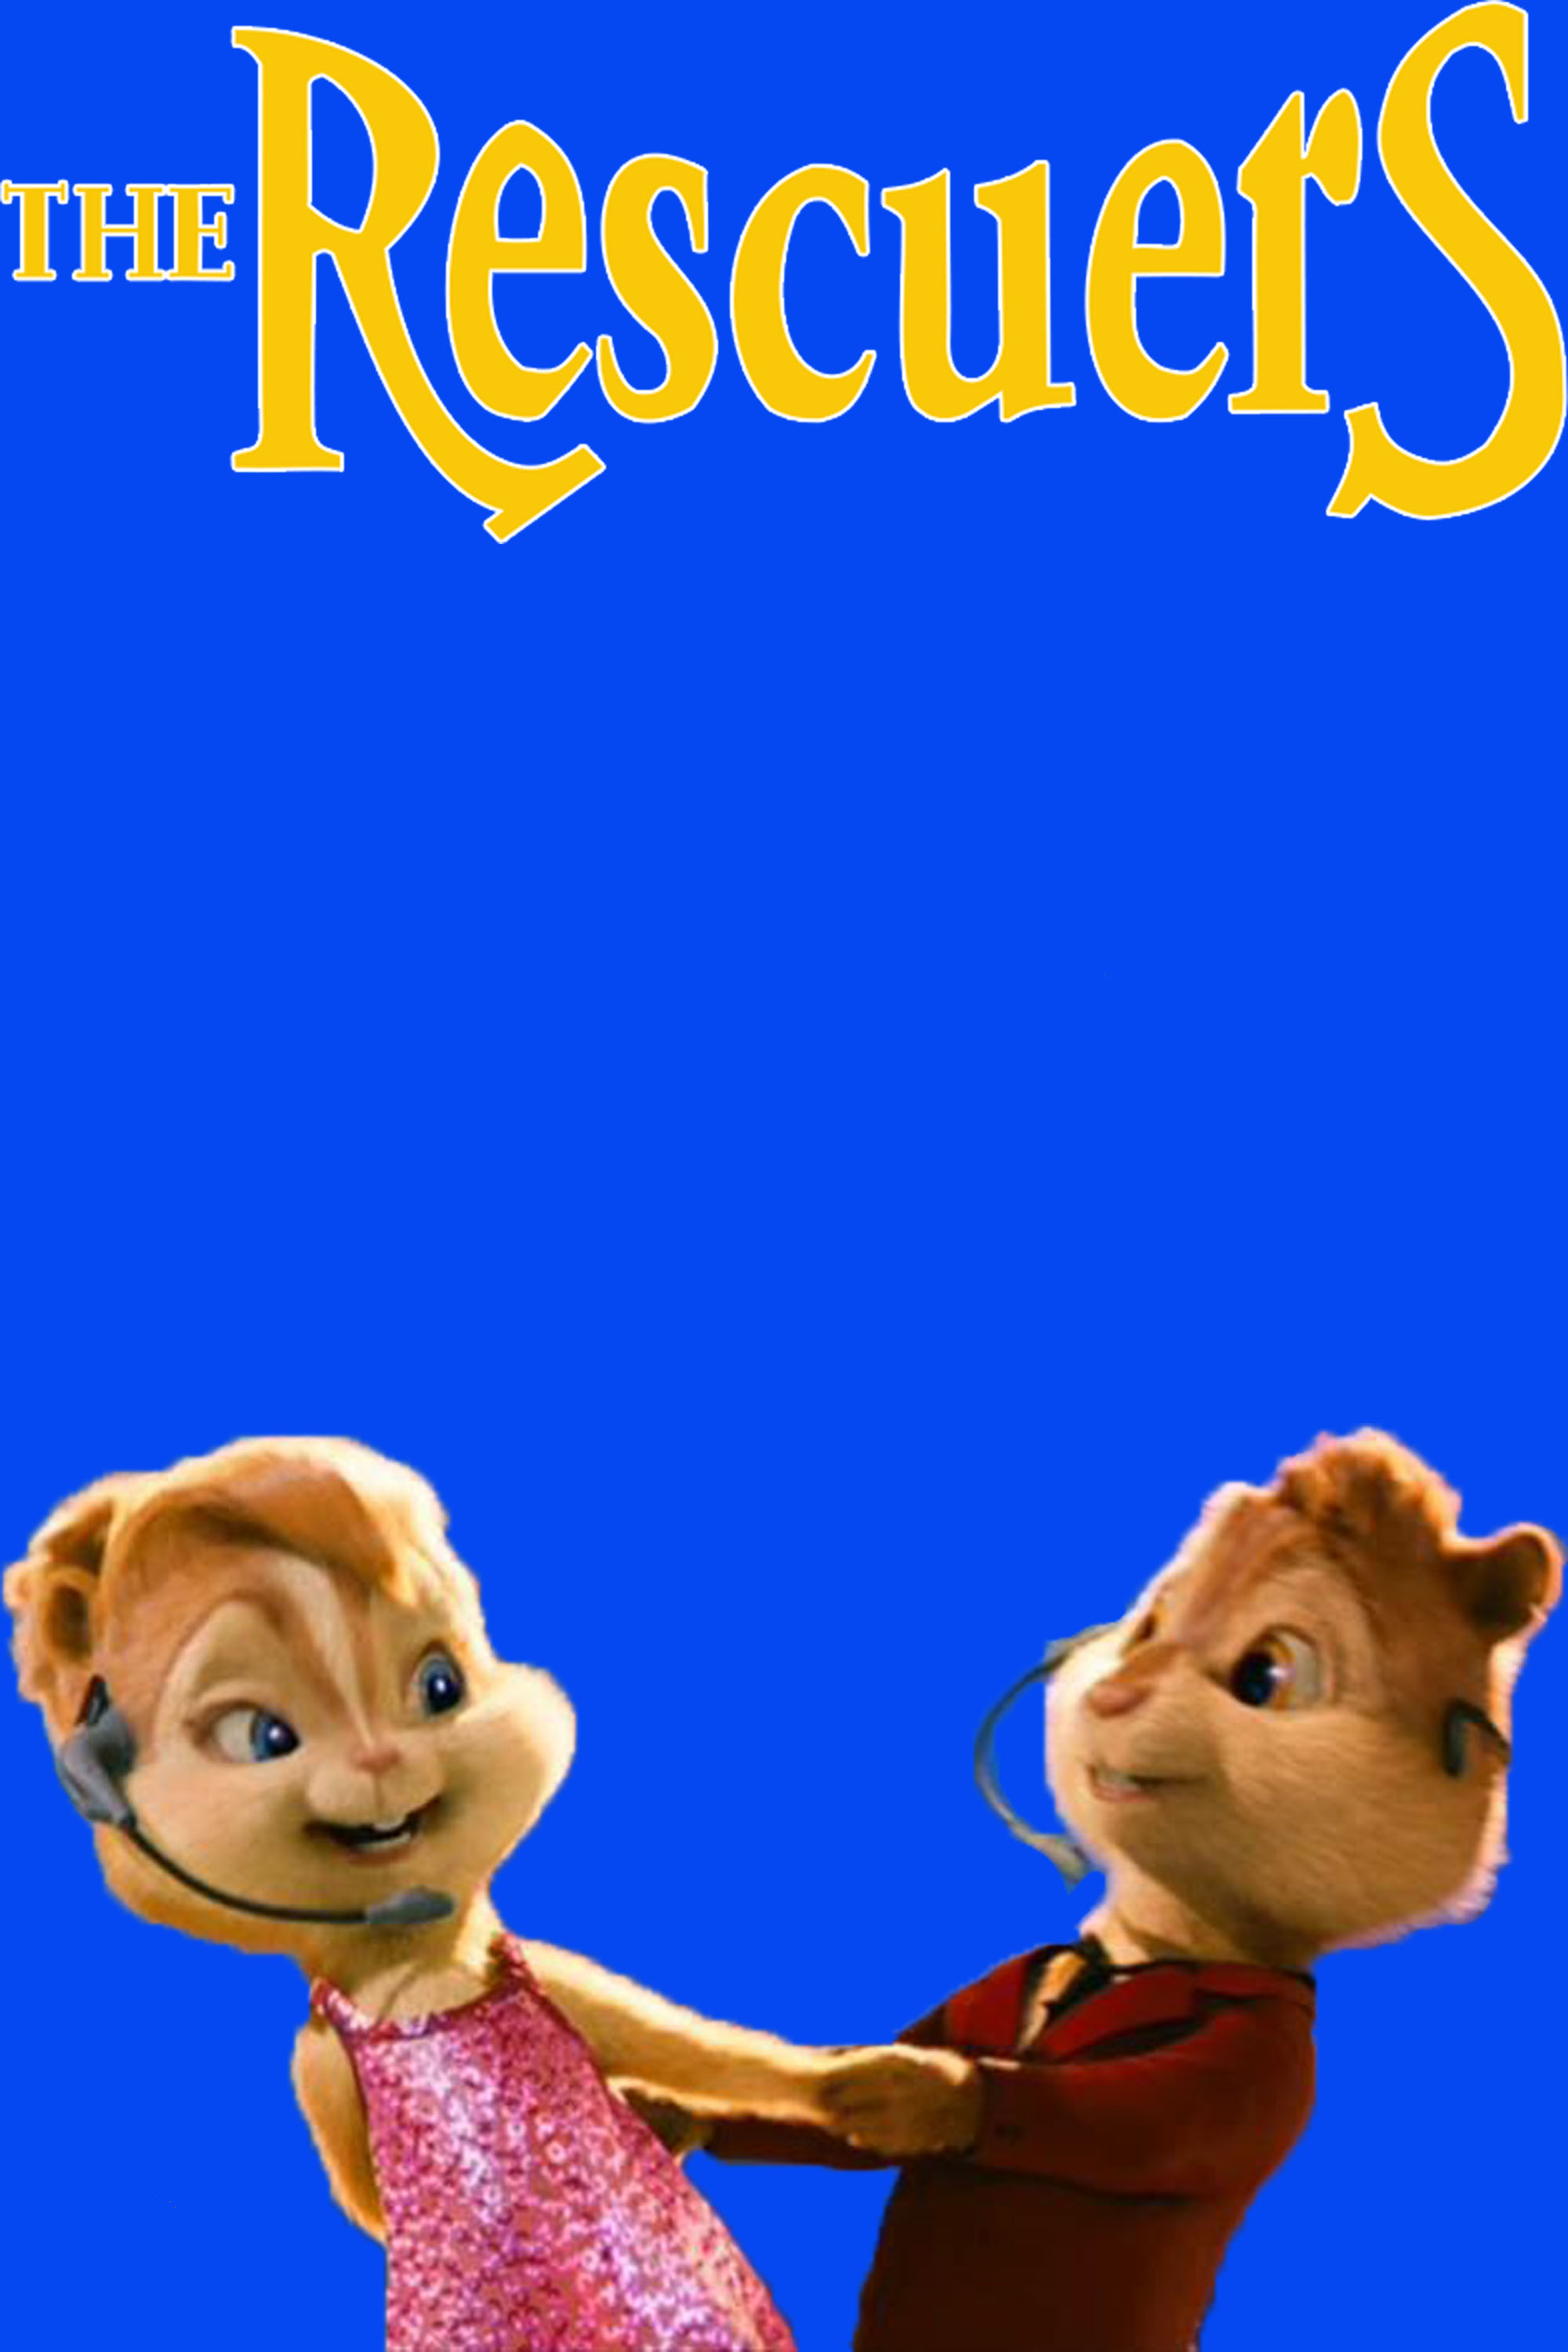 The Rescuers (Broadwaygirl918 Style)